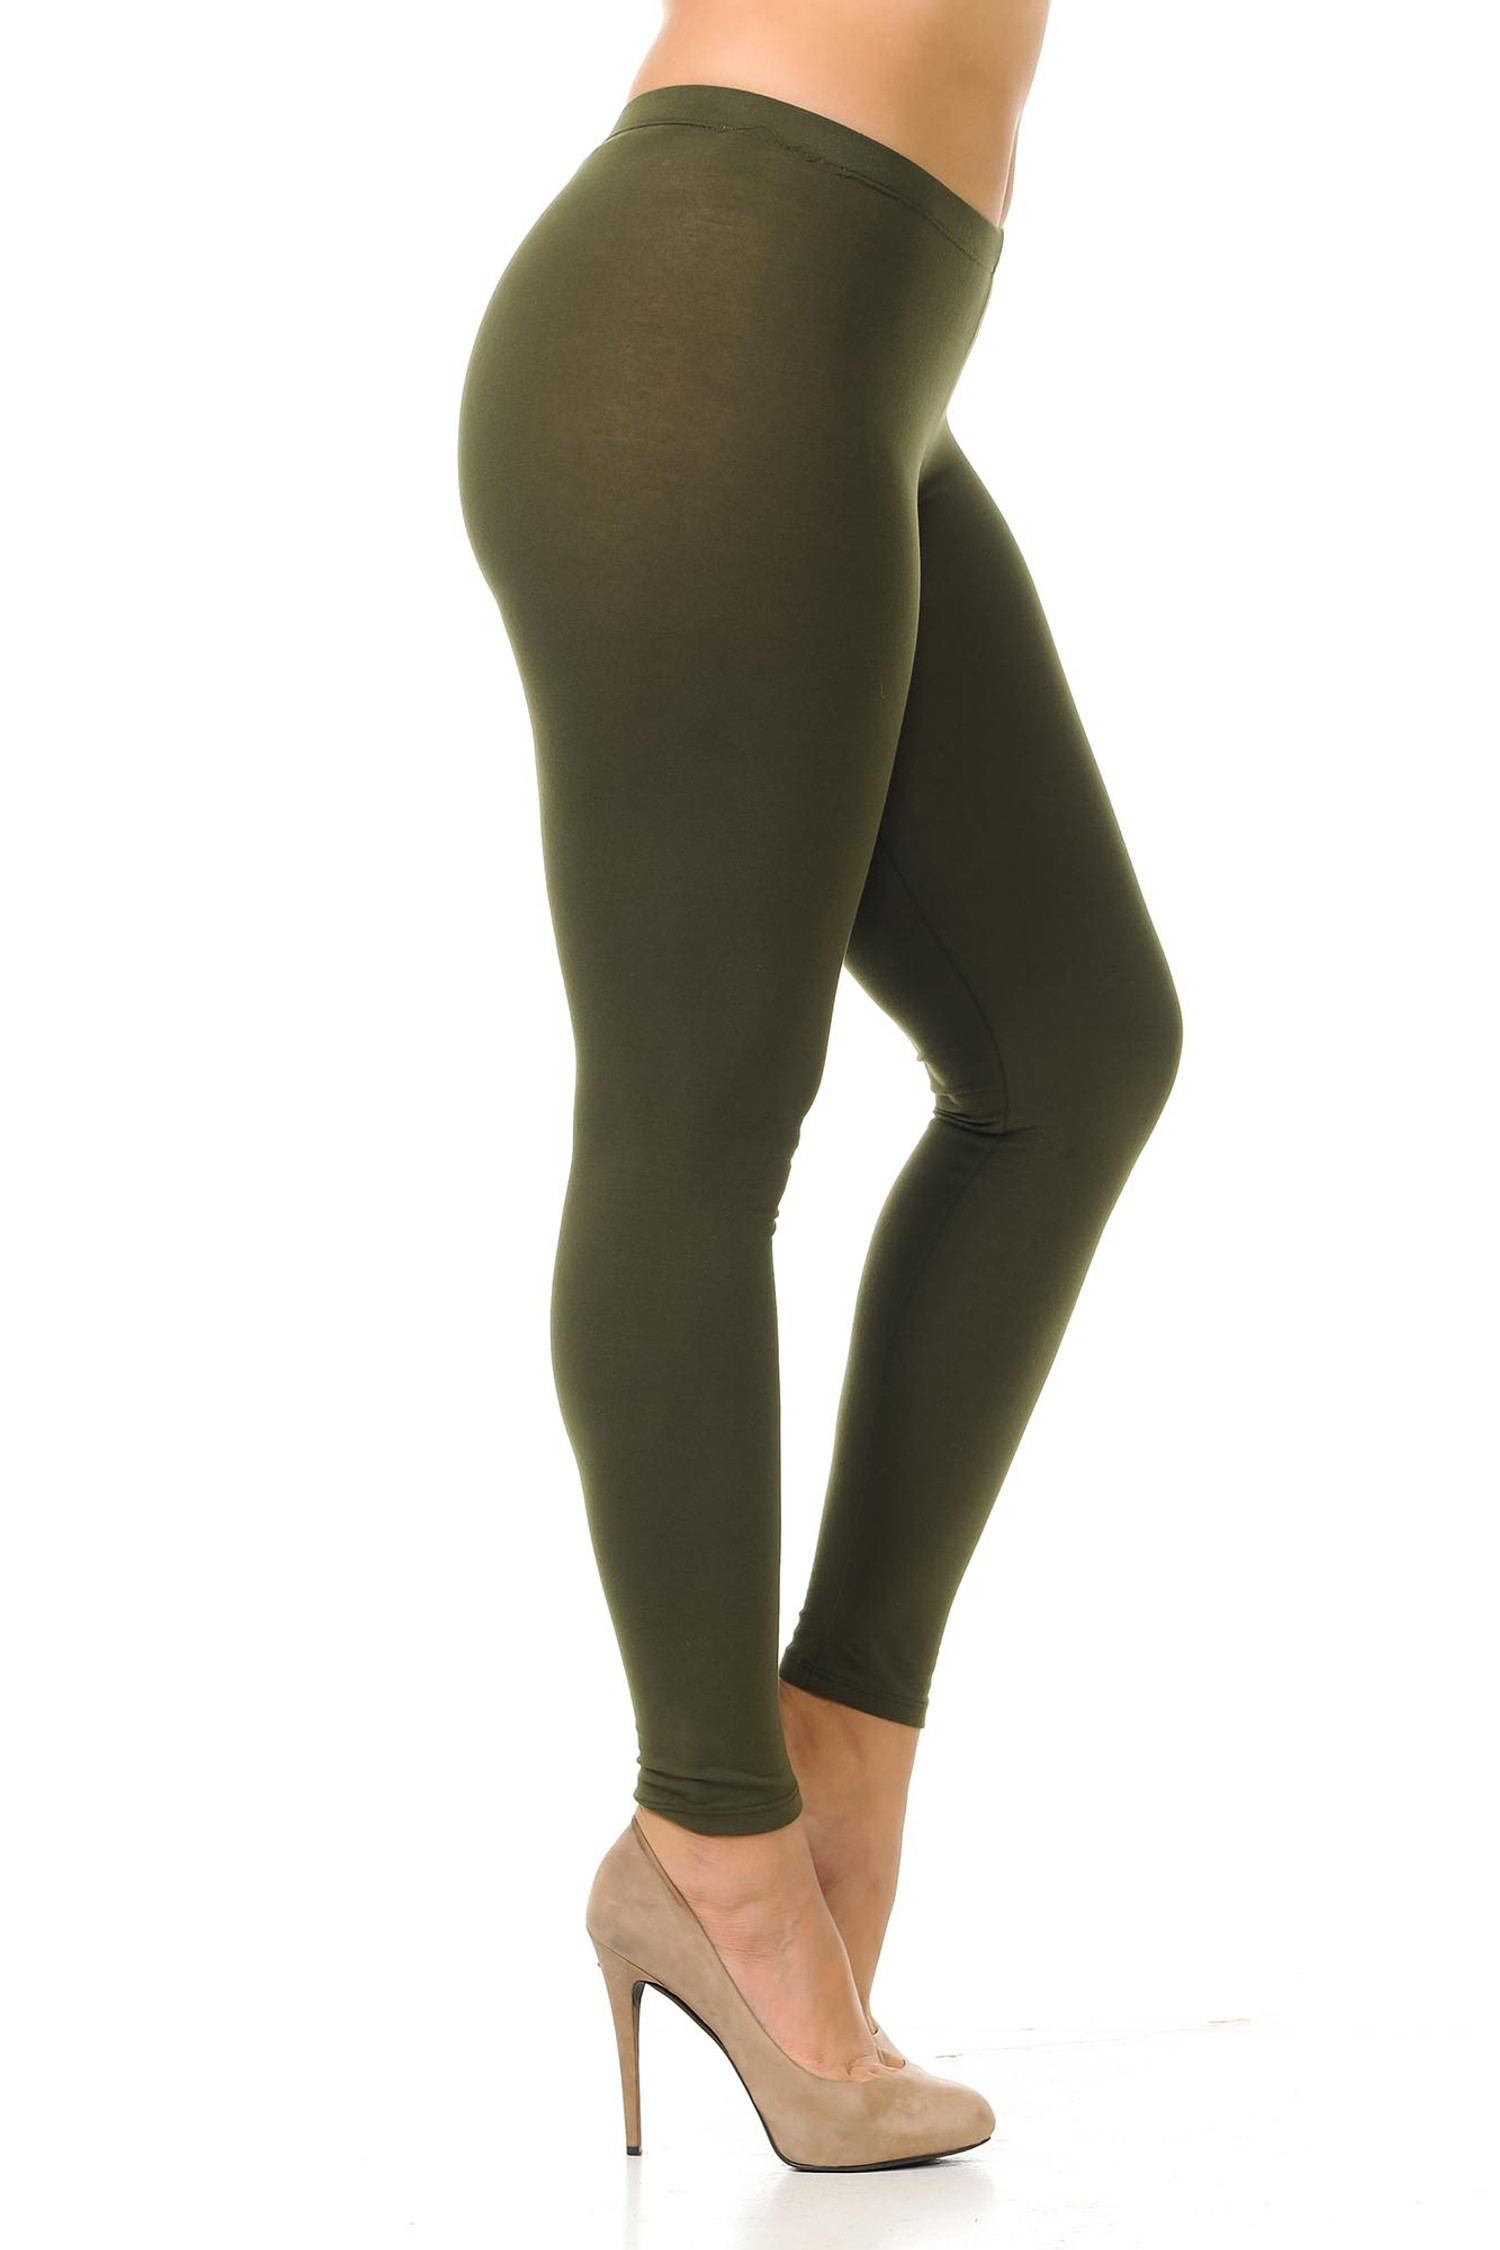 Right side view of olive plus size USA Cotton Full Length Leggings.